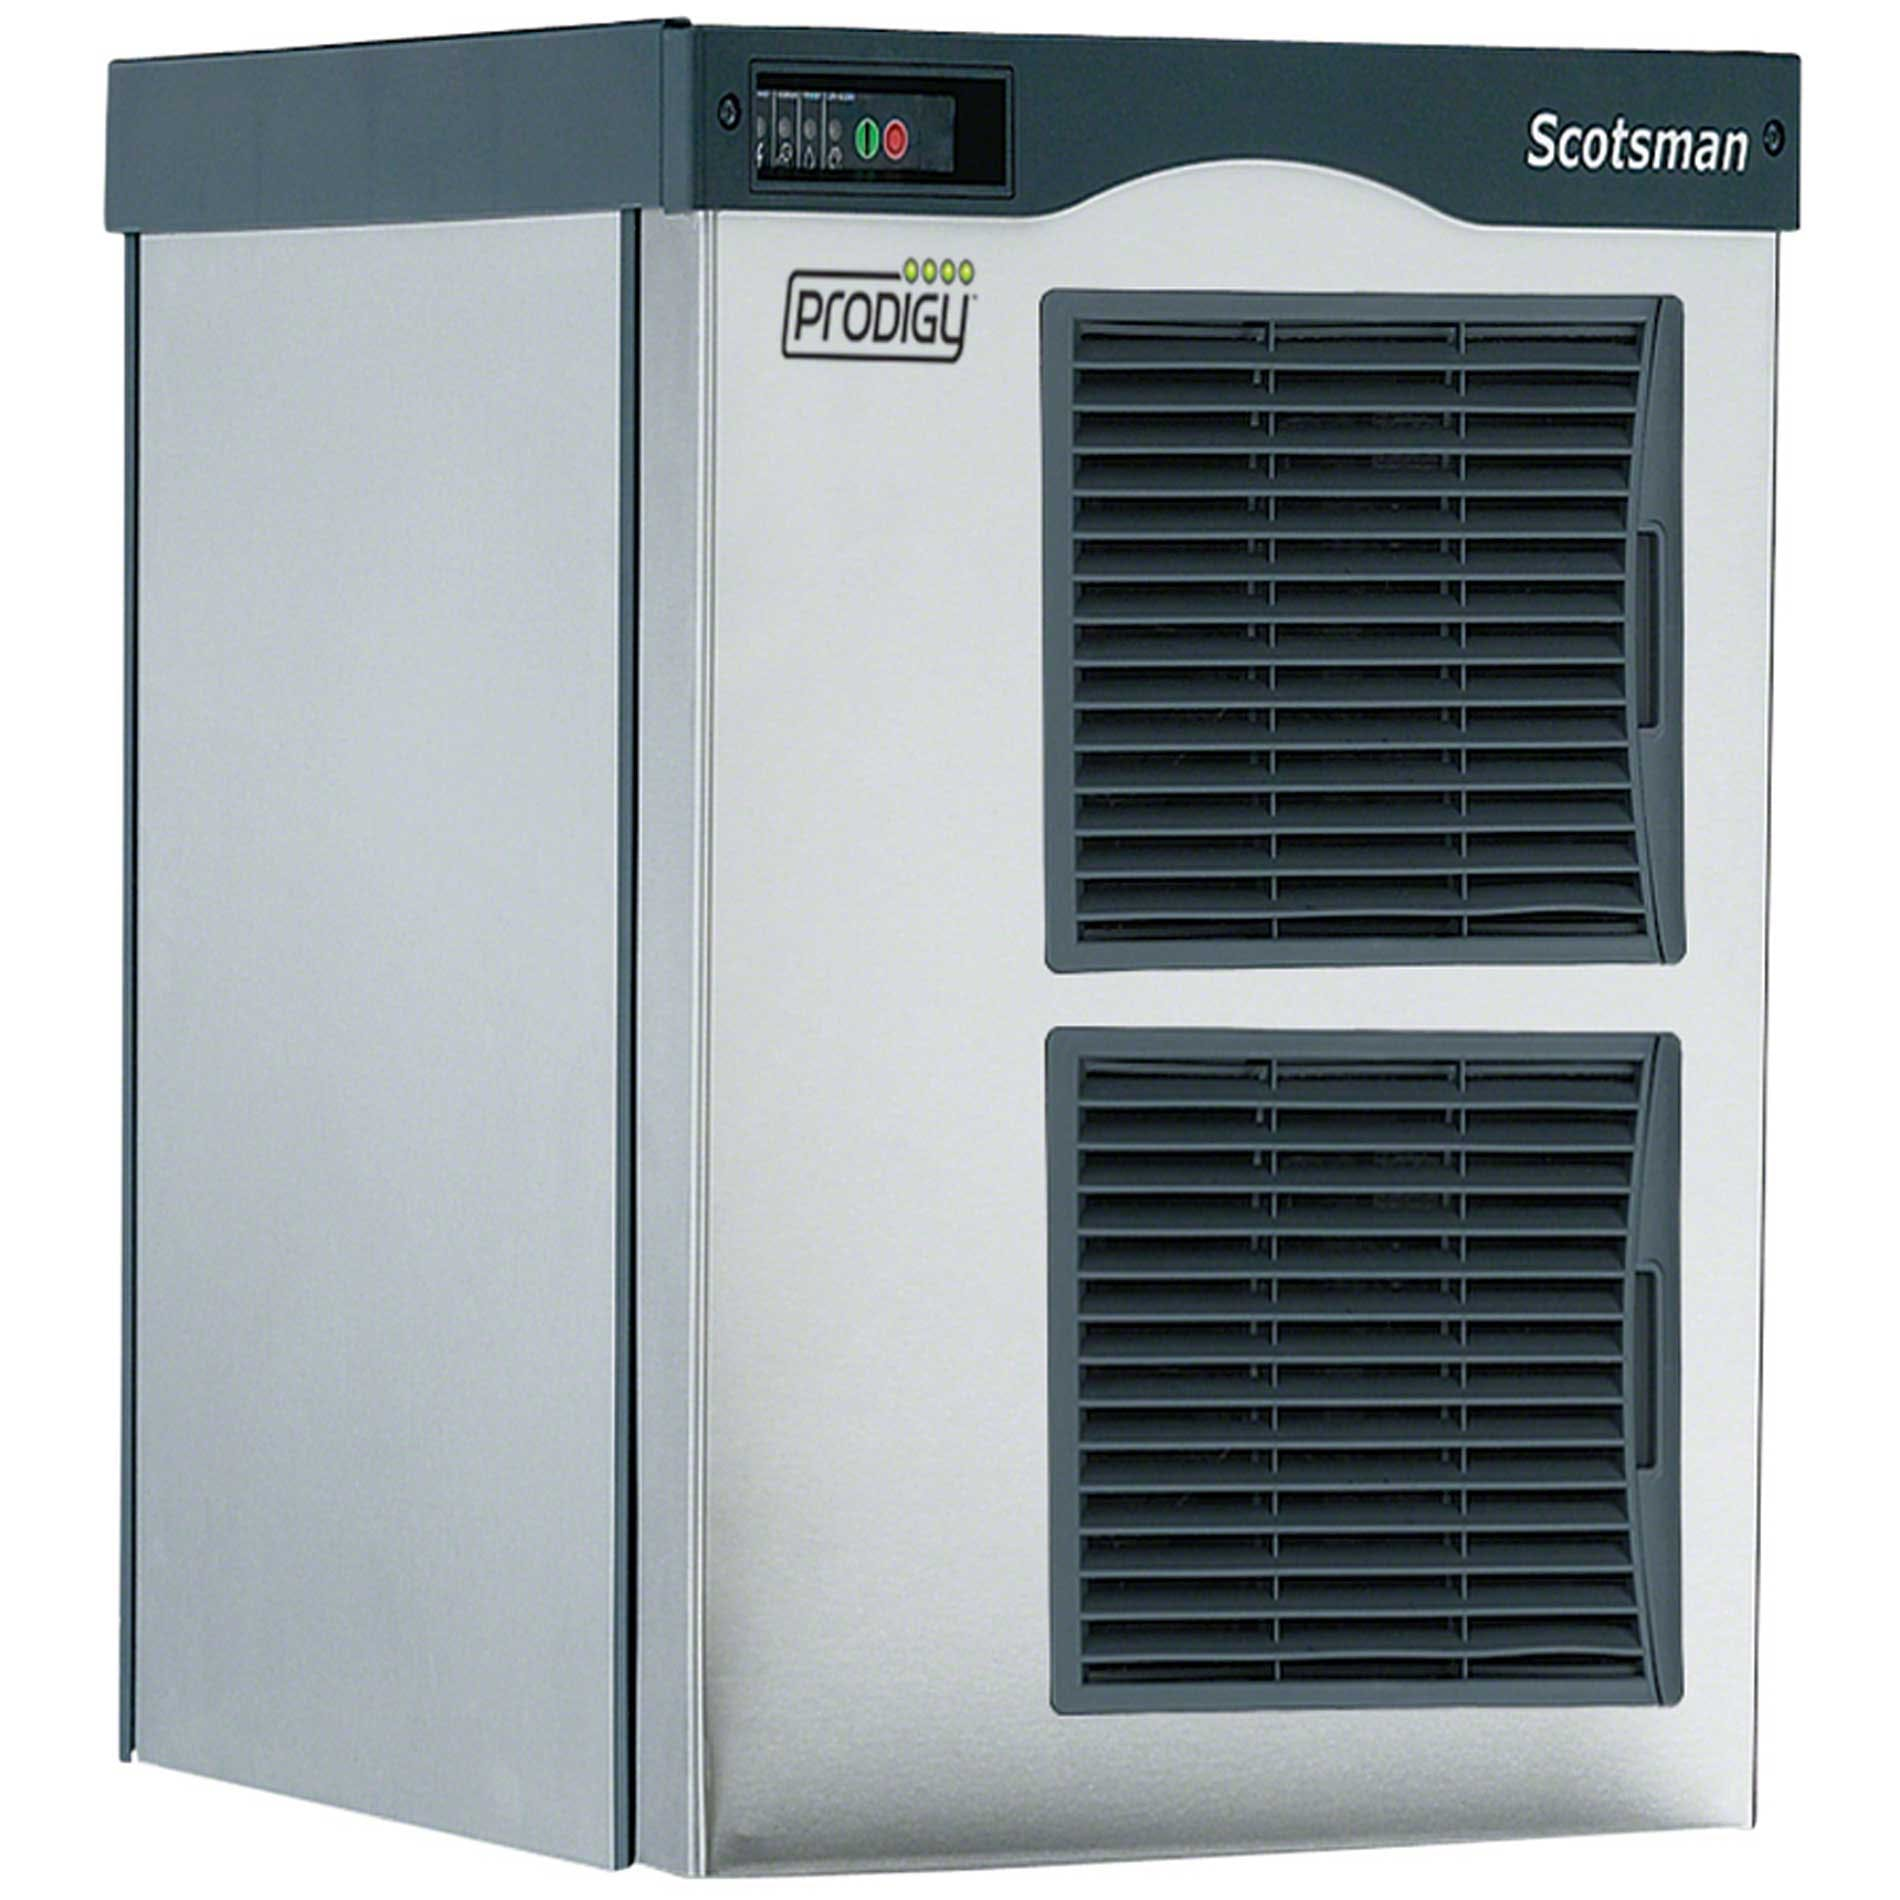 Scotsman - N1322W-3 Prodigy® Nugget Ice Machine Condensing Unit Ice machine sold by Food Service Warehouse